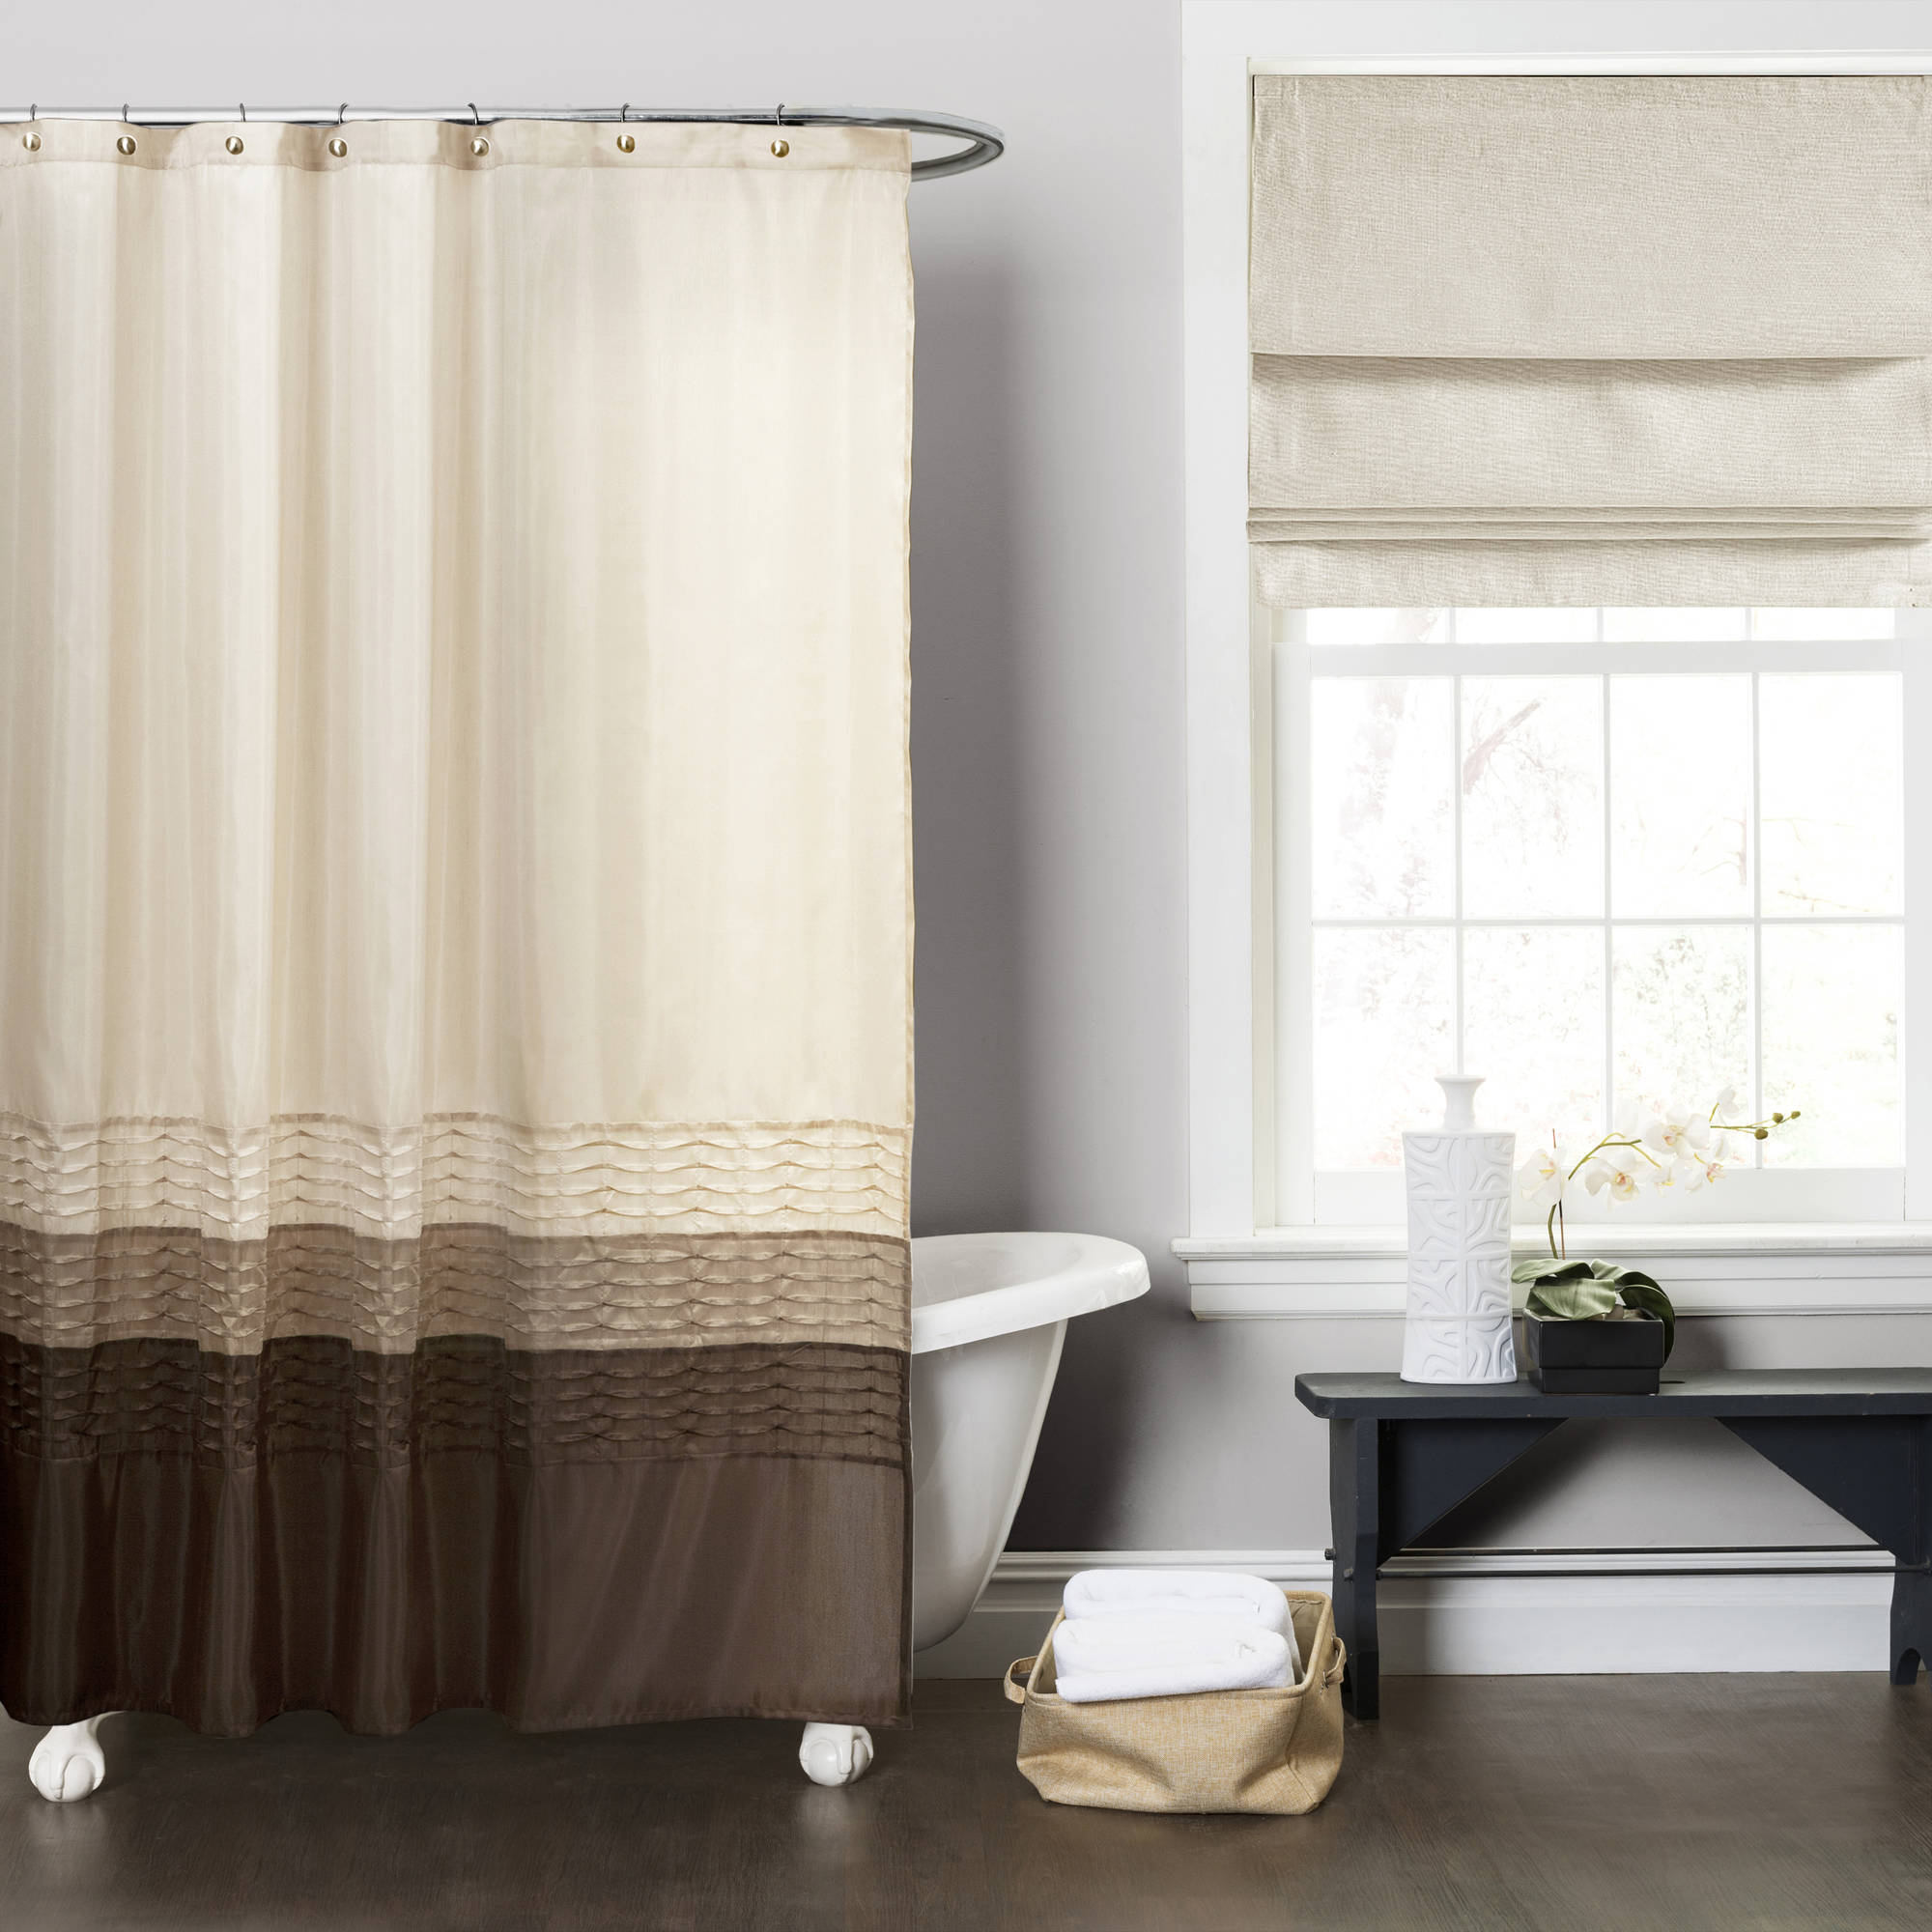 very curtain drapery design mid ideas modern fabric curtains shower bathroom in inspiring with designs stall designscurtain century